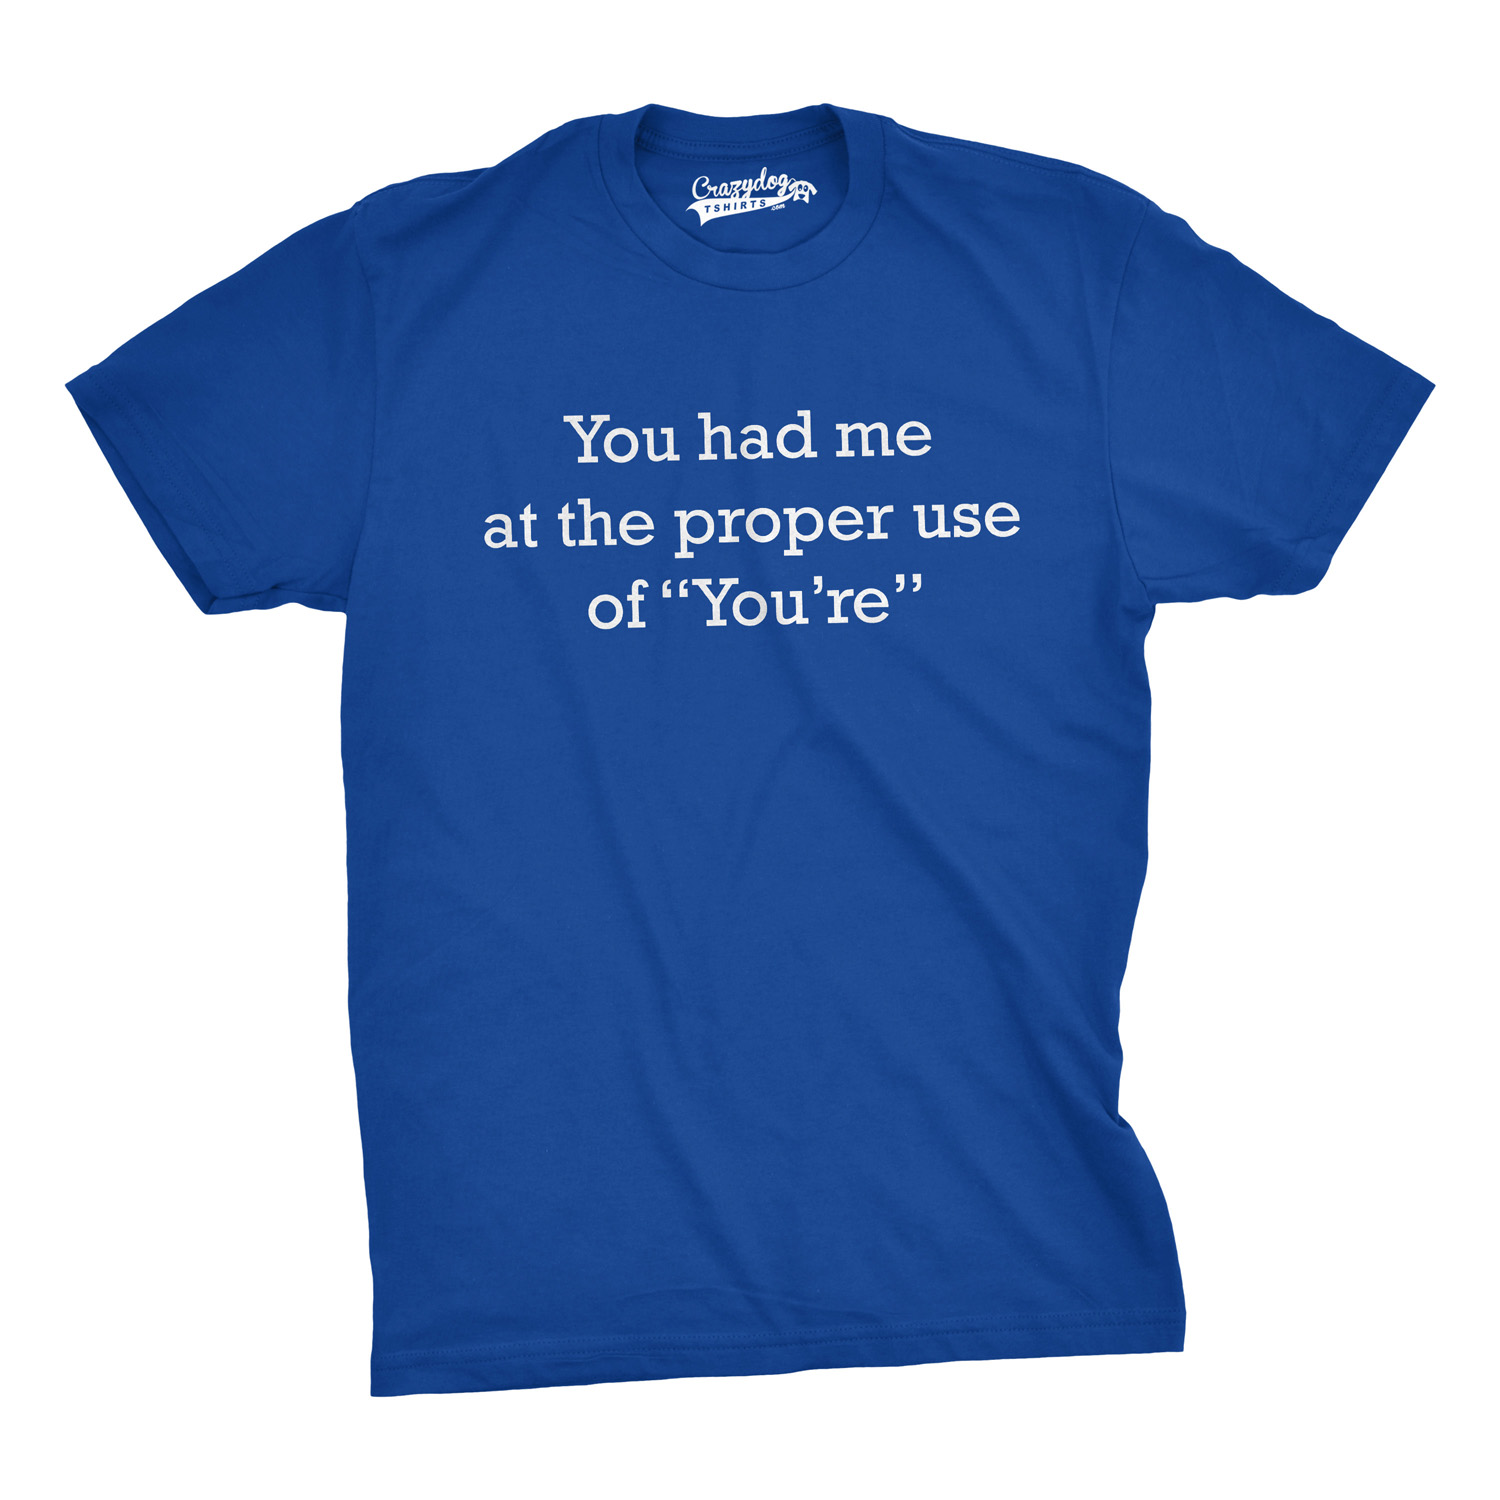 Crazy Dog TShirts - You Had Me at the Proper Use of You're T-Shirt - Funny Grammar Shirt